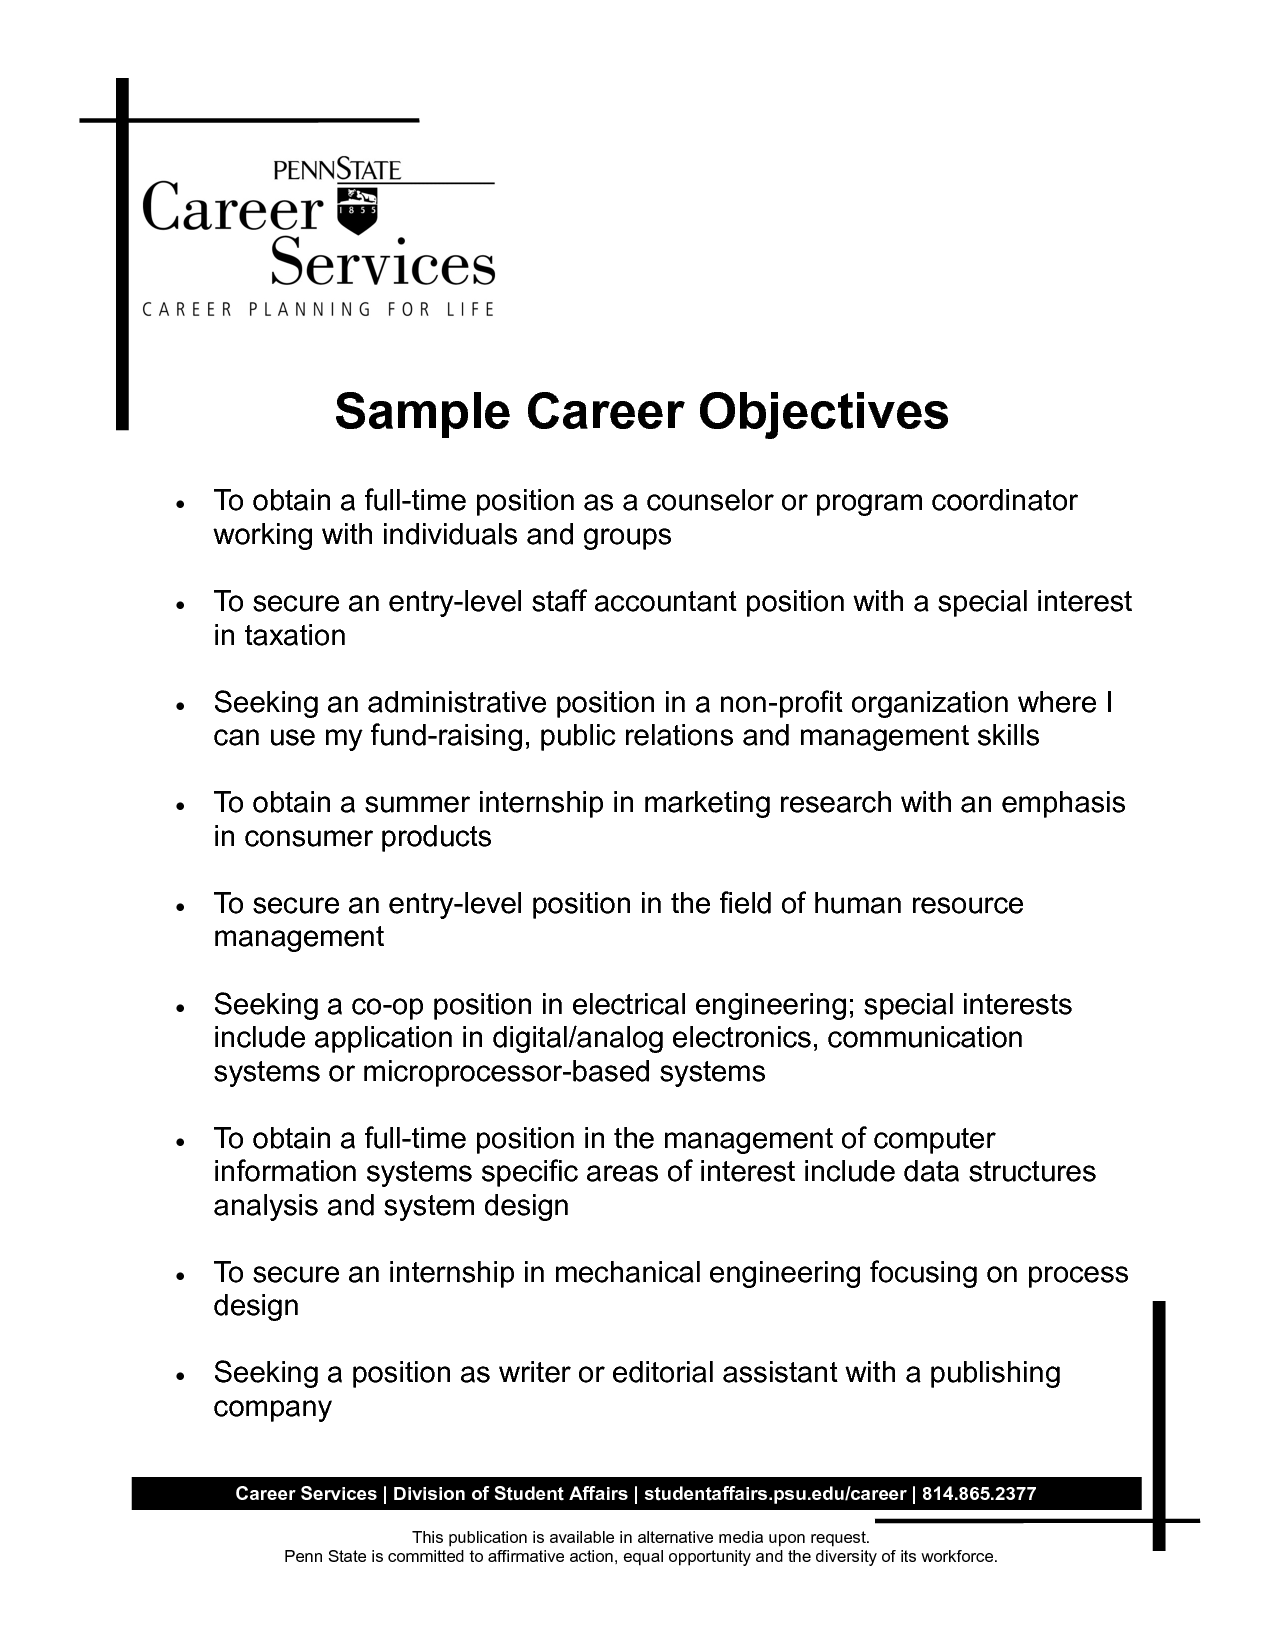 Sample Career Objective Statements Some Potition OfGallery Of Resume Career  Objective Examples With Resume Career Objective Statements